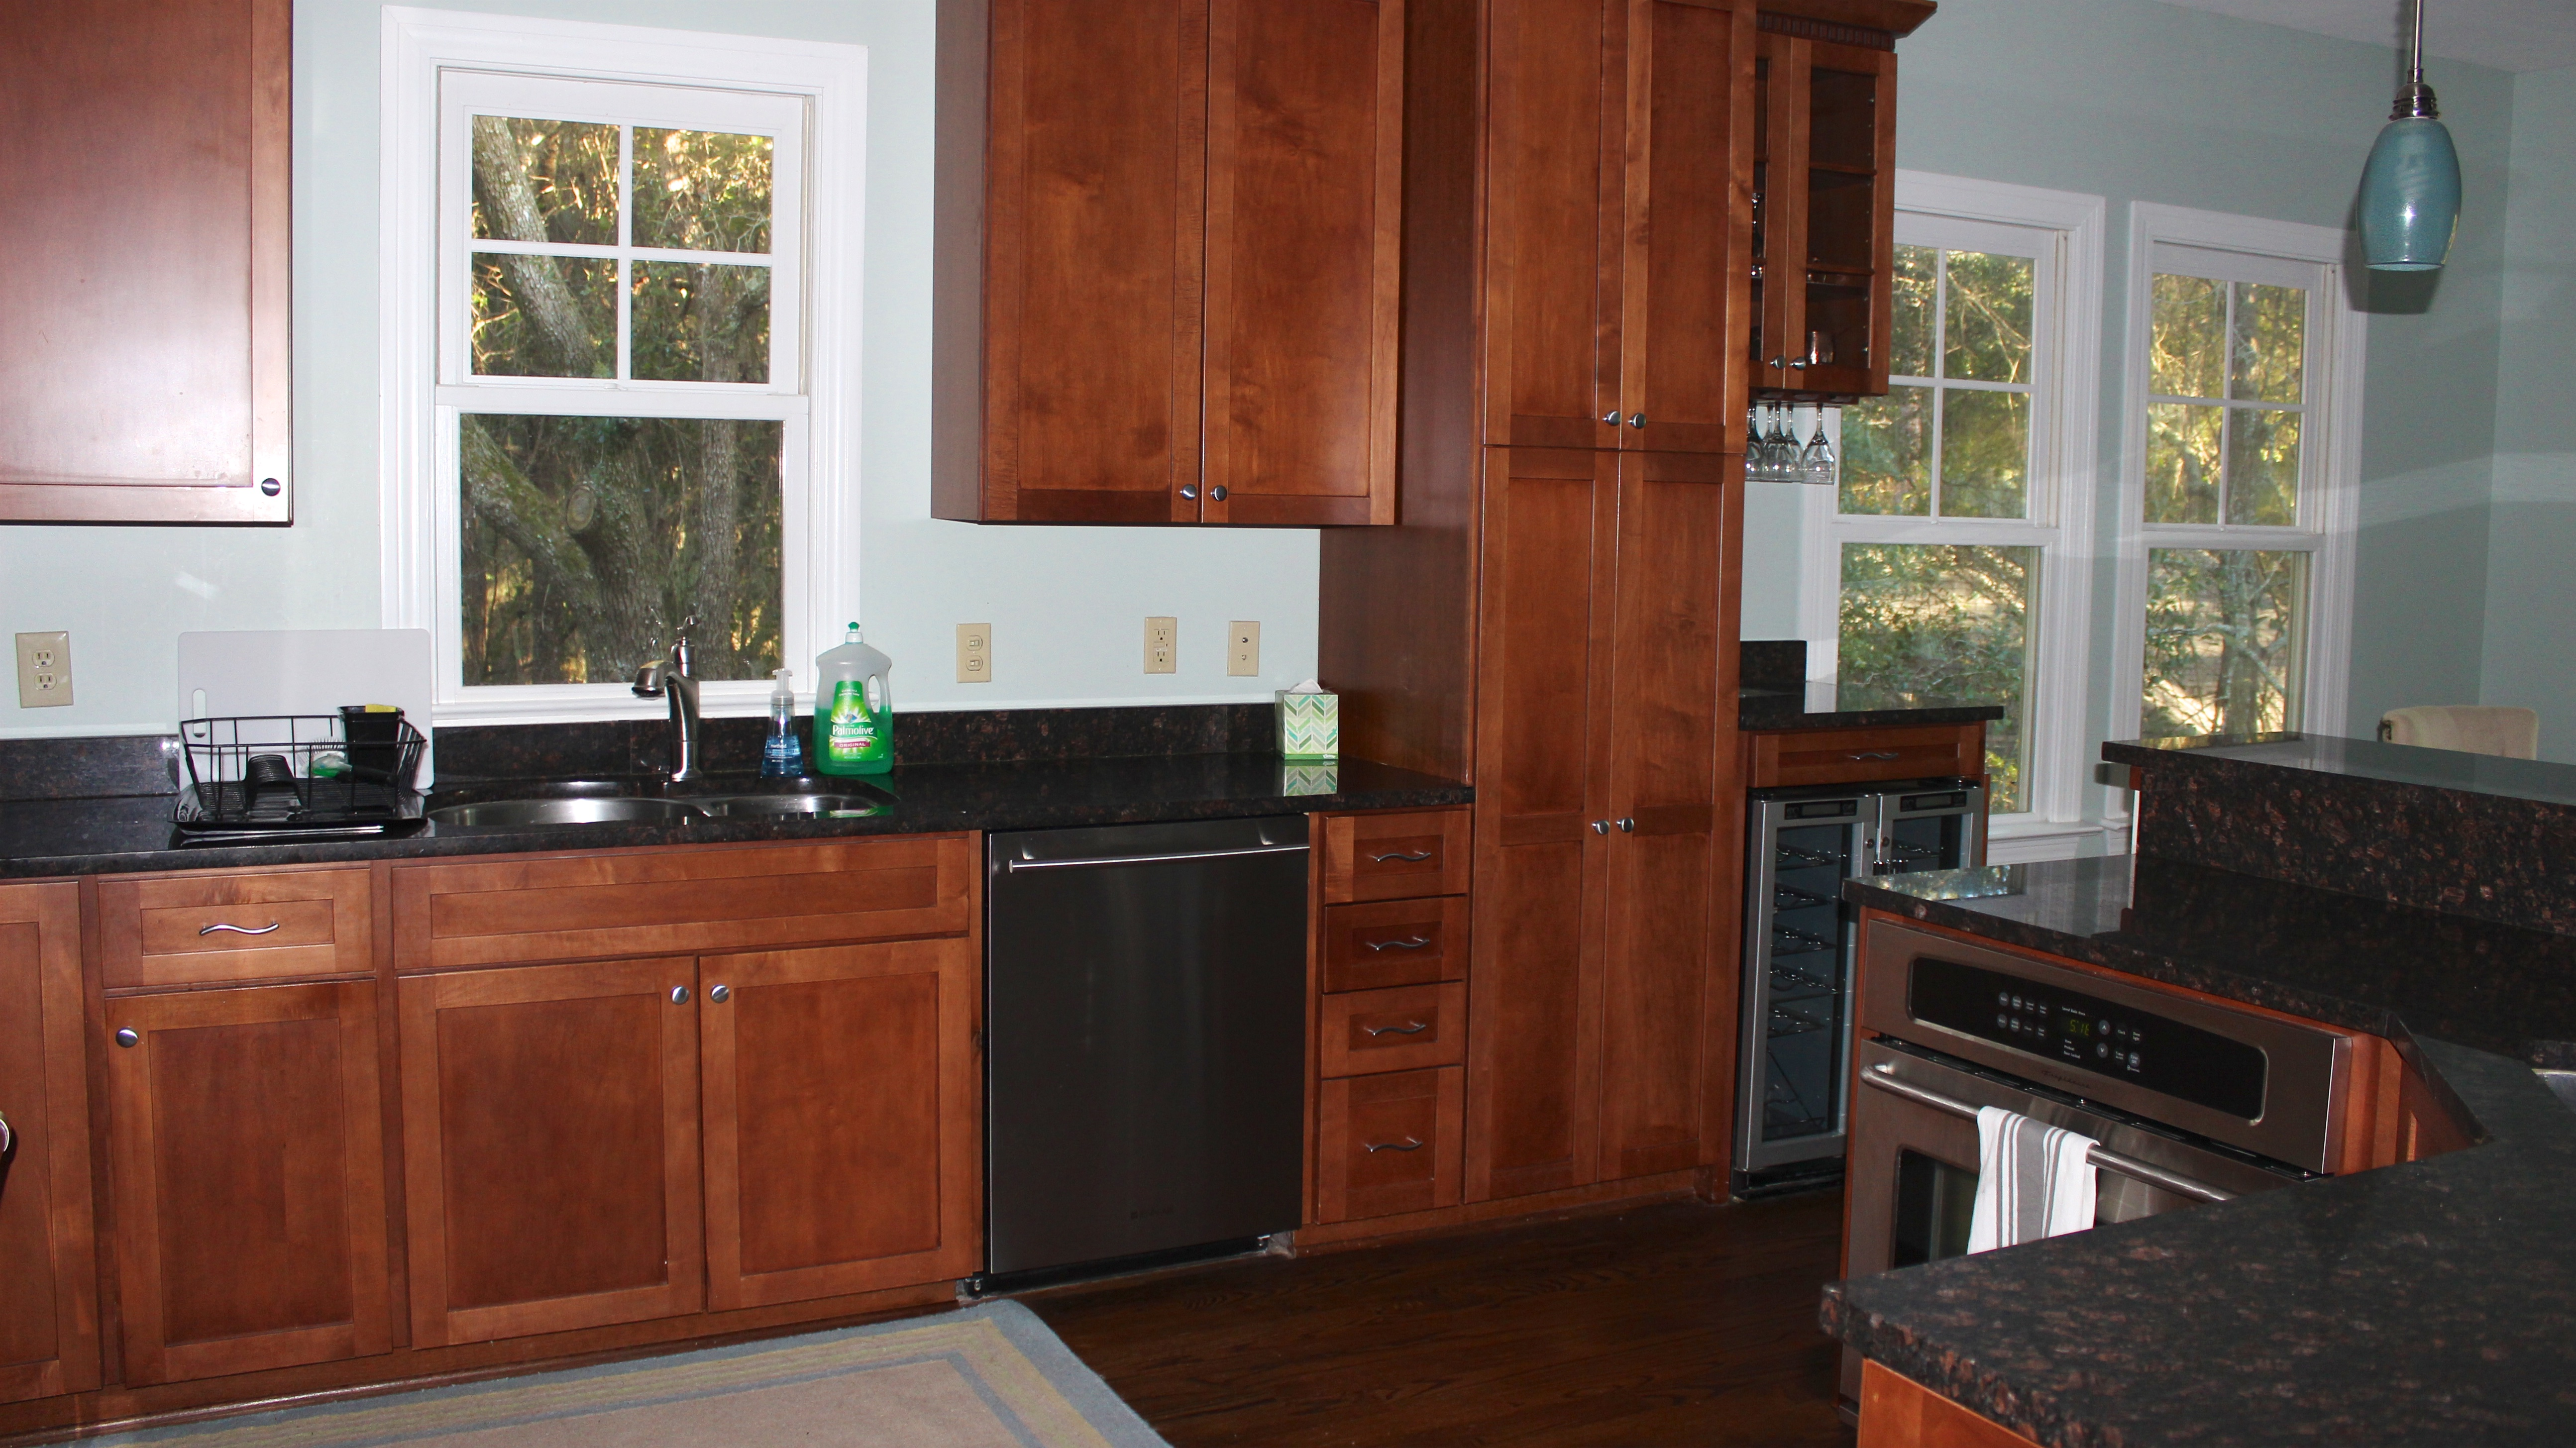 There is a large pantry for your food and a wine cooler for your drinks.